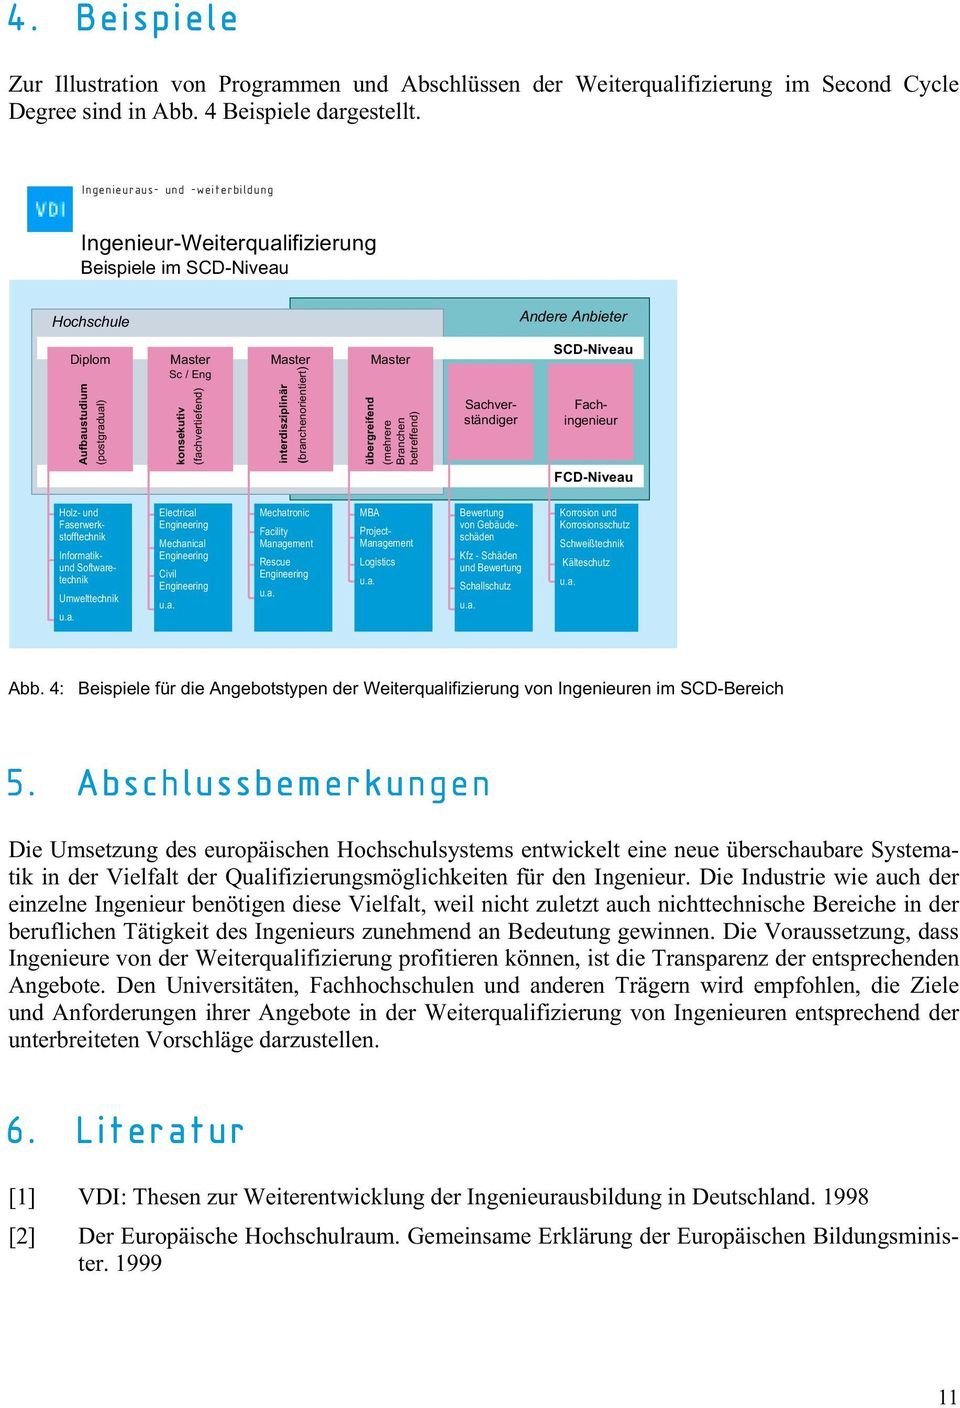 interdisziplinär (branchenorientiert) übergreifend (mehrere Branchen betreffend) Fachingenieur Sachverständiger SCD-Niveau FCD-Niveau Electrical Engineering Mechanical Engineering Civil Engineering u.